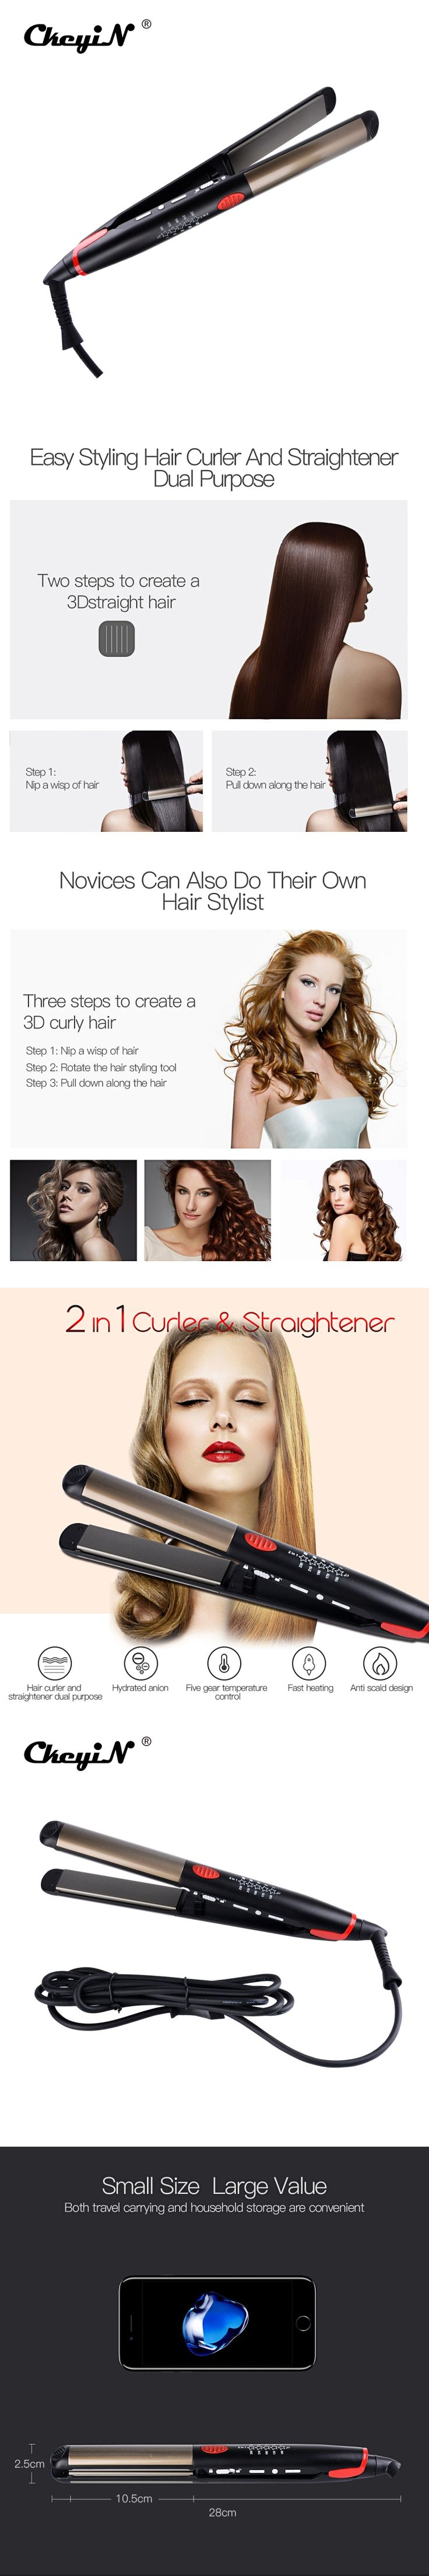 CkeyiN 2 In 1 Corrugated Curling Hair Electric Hair Straightener Crimper Fluffy Waves Hair Curlers Curling Irons Styling Tools